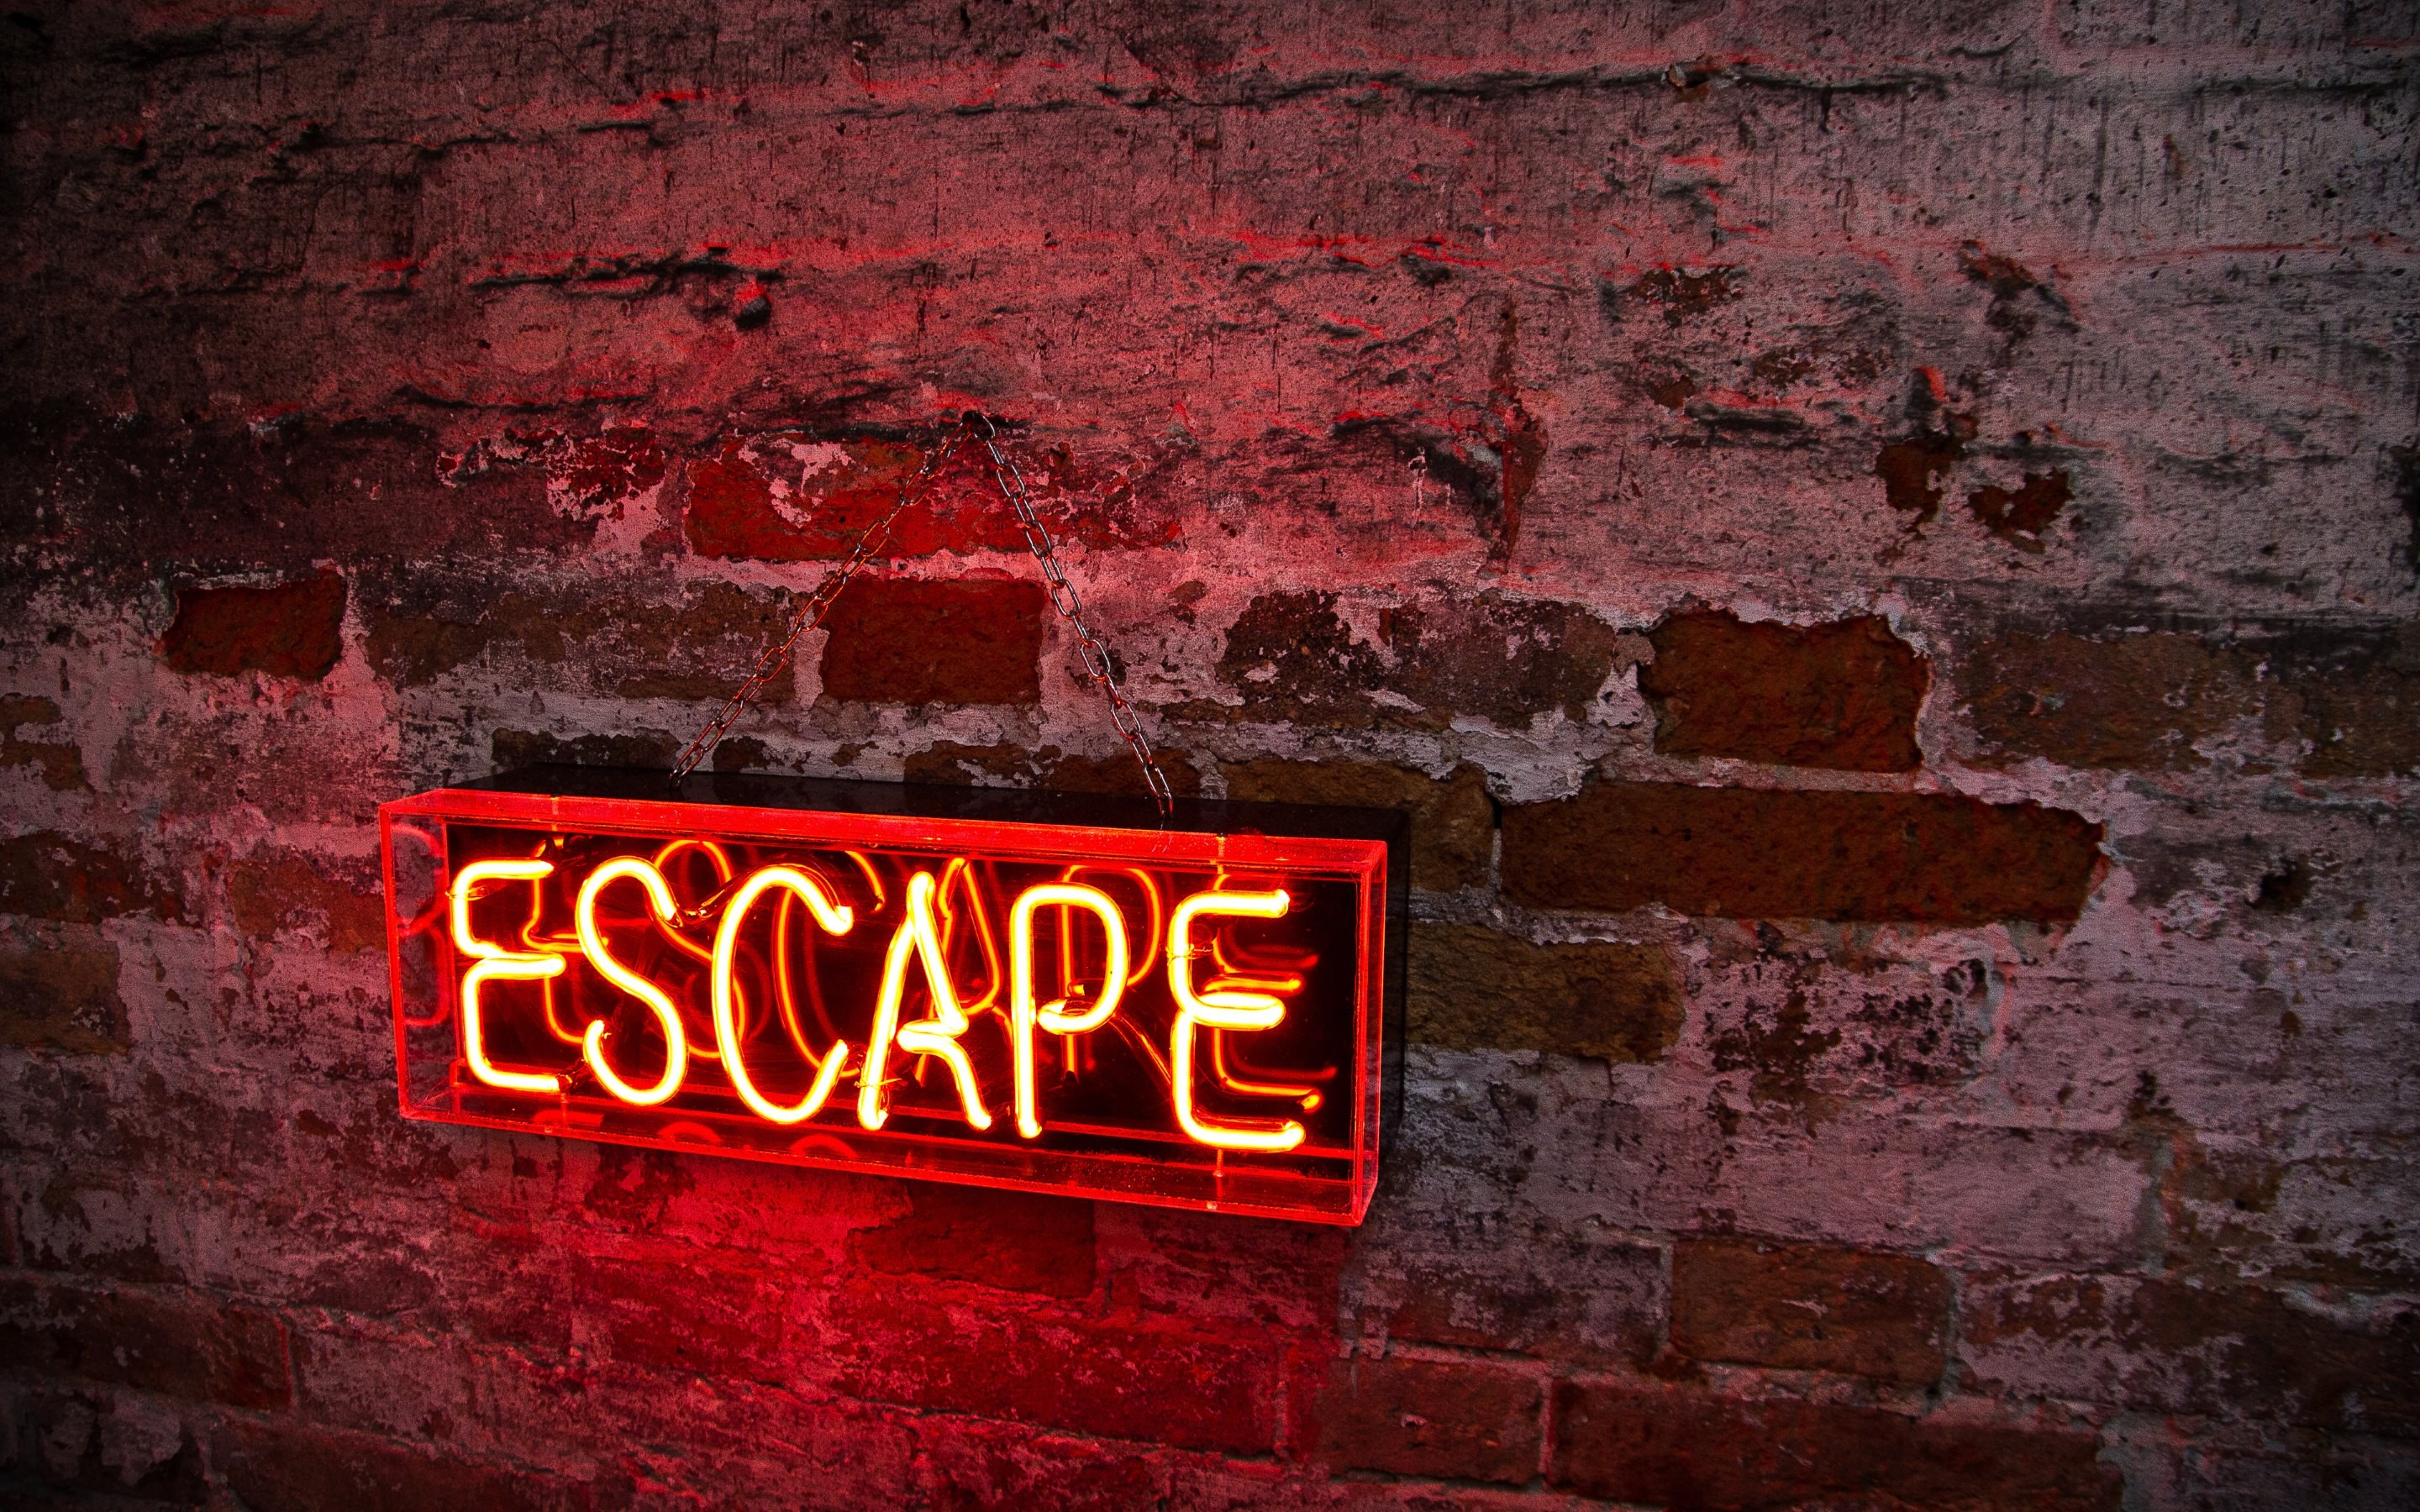 ESCAPE, HD Creative, 4k Wallpapers, Images, Backgrounds